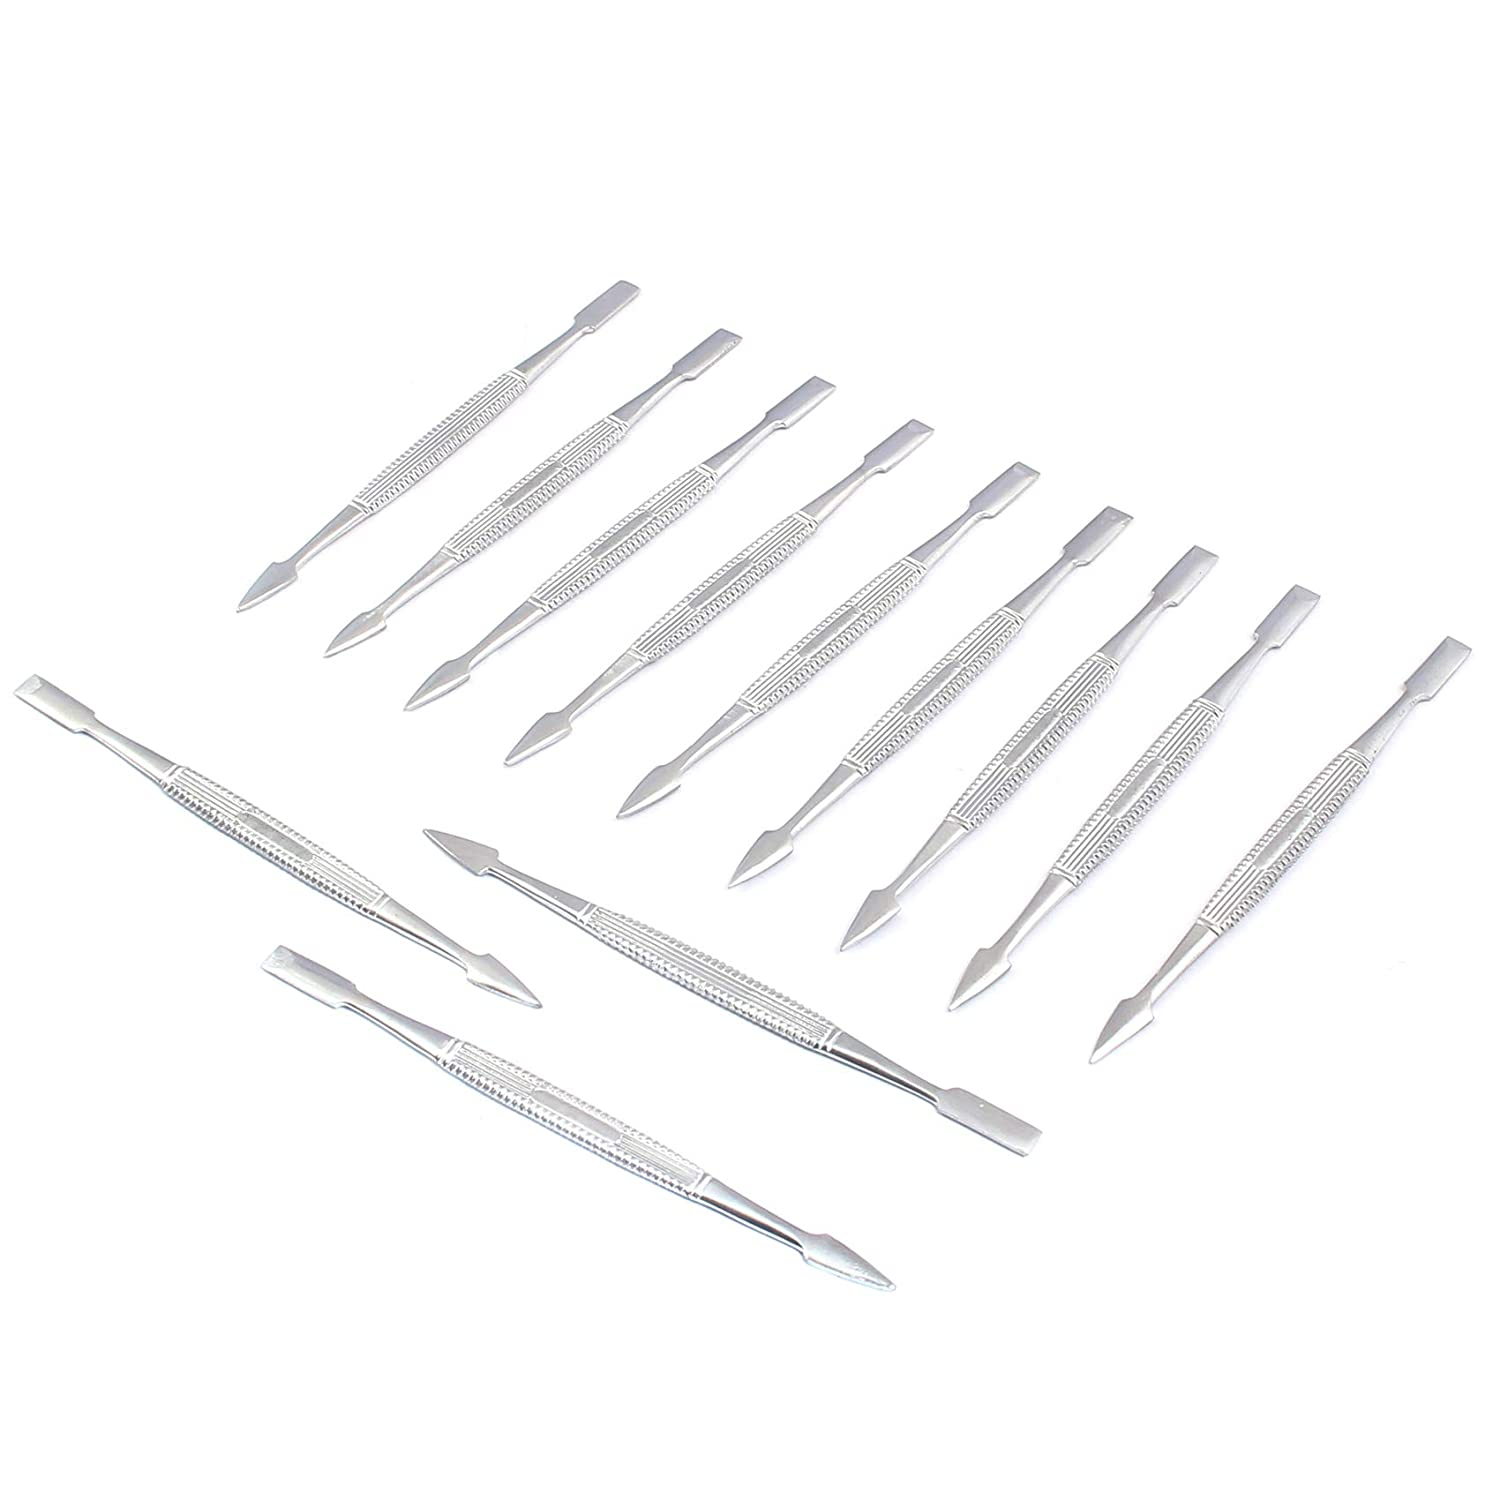 OdontoMed2011 Lot Of 12 Professional Max 55% OFF price Cuticle Pusher Chrome Nail